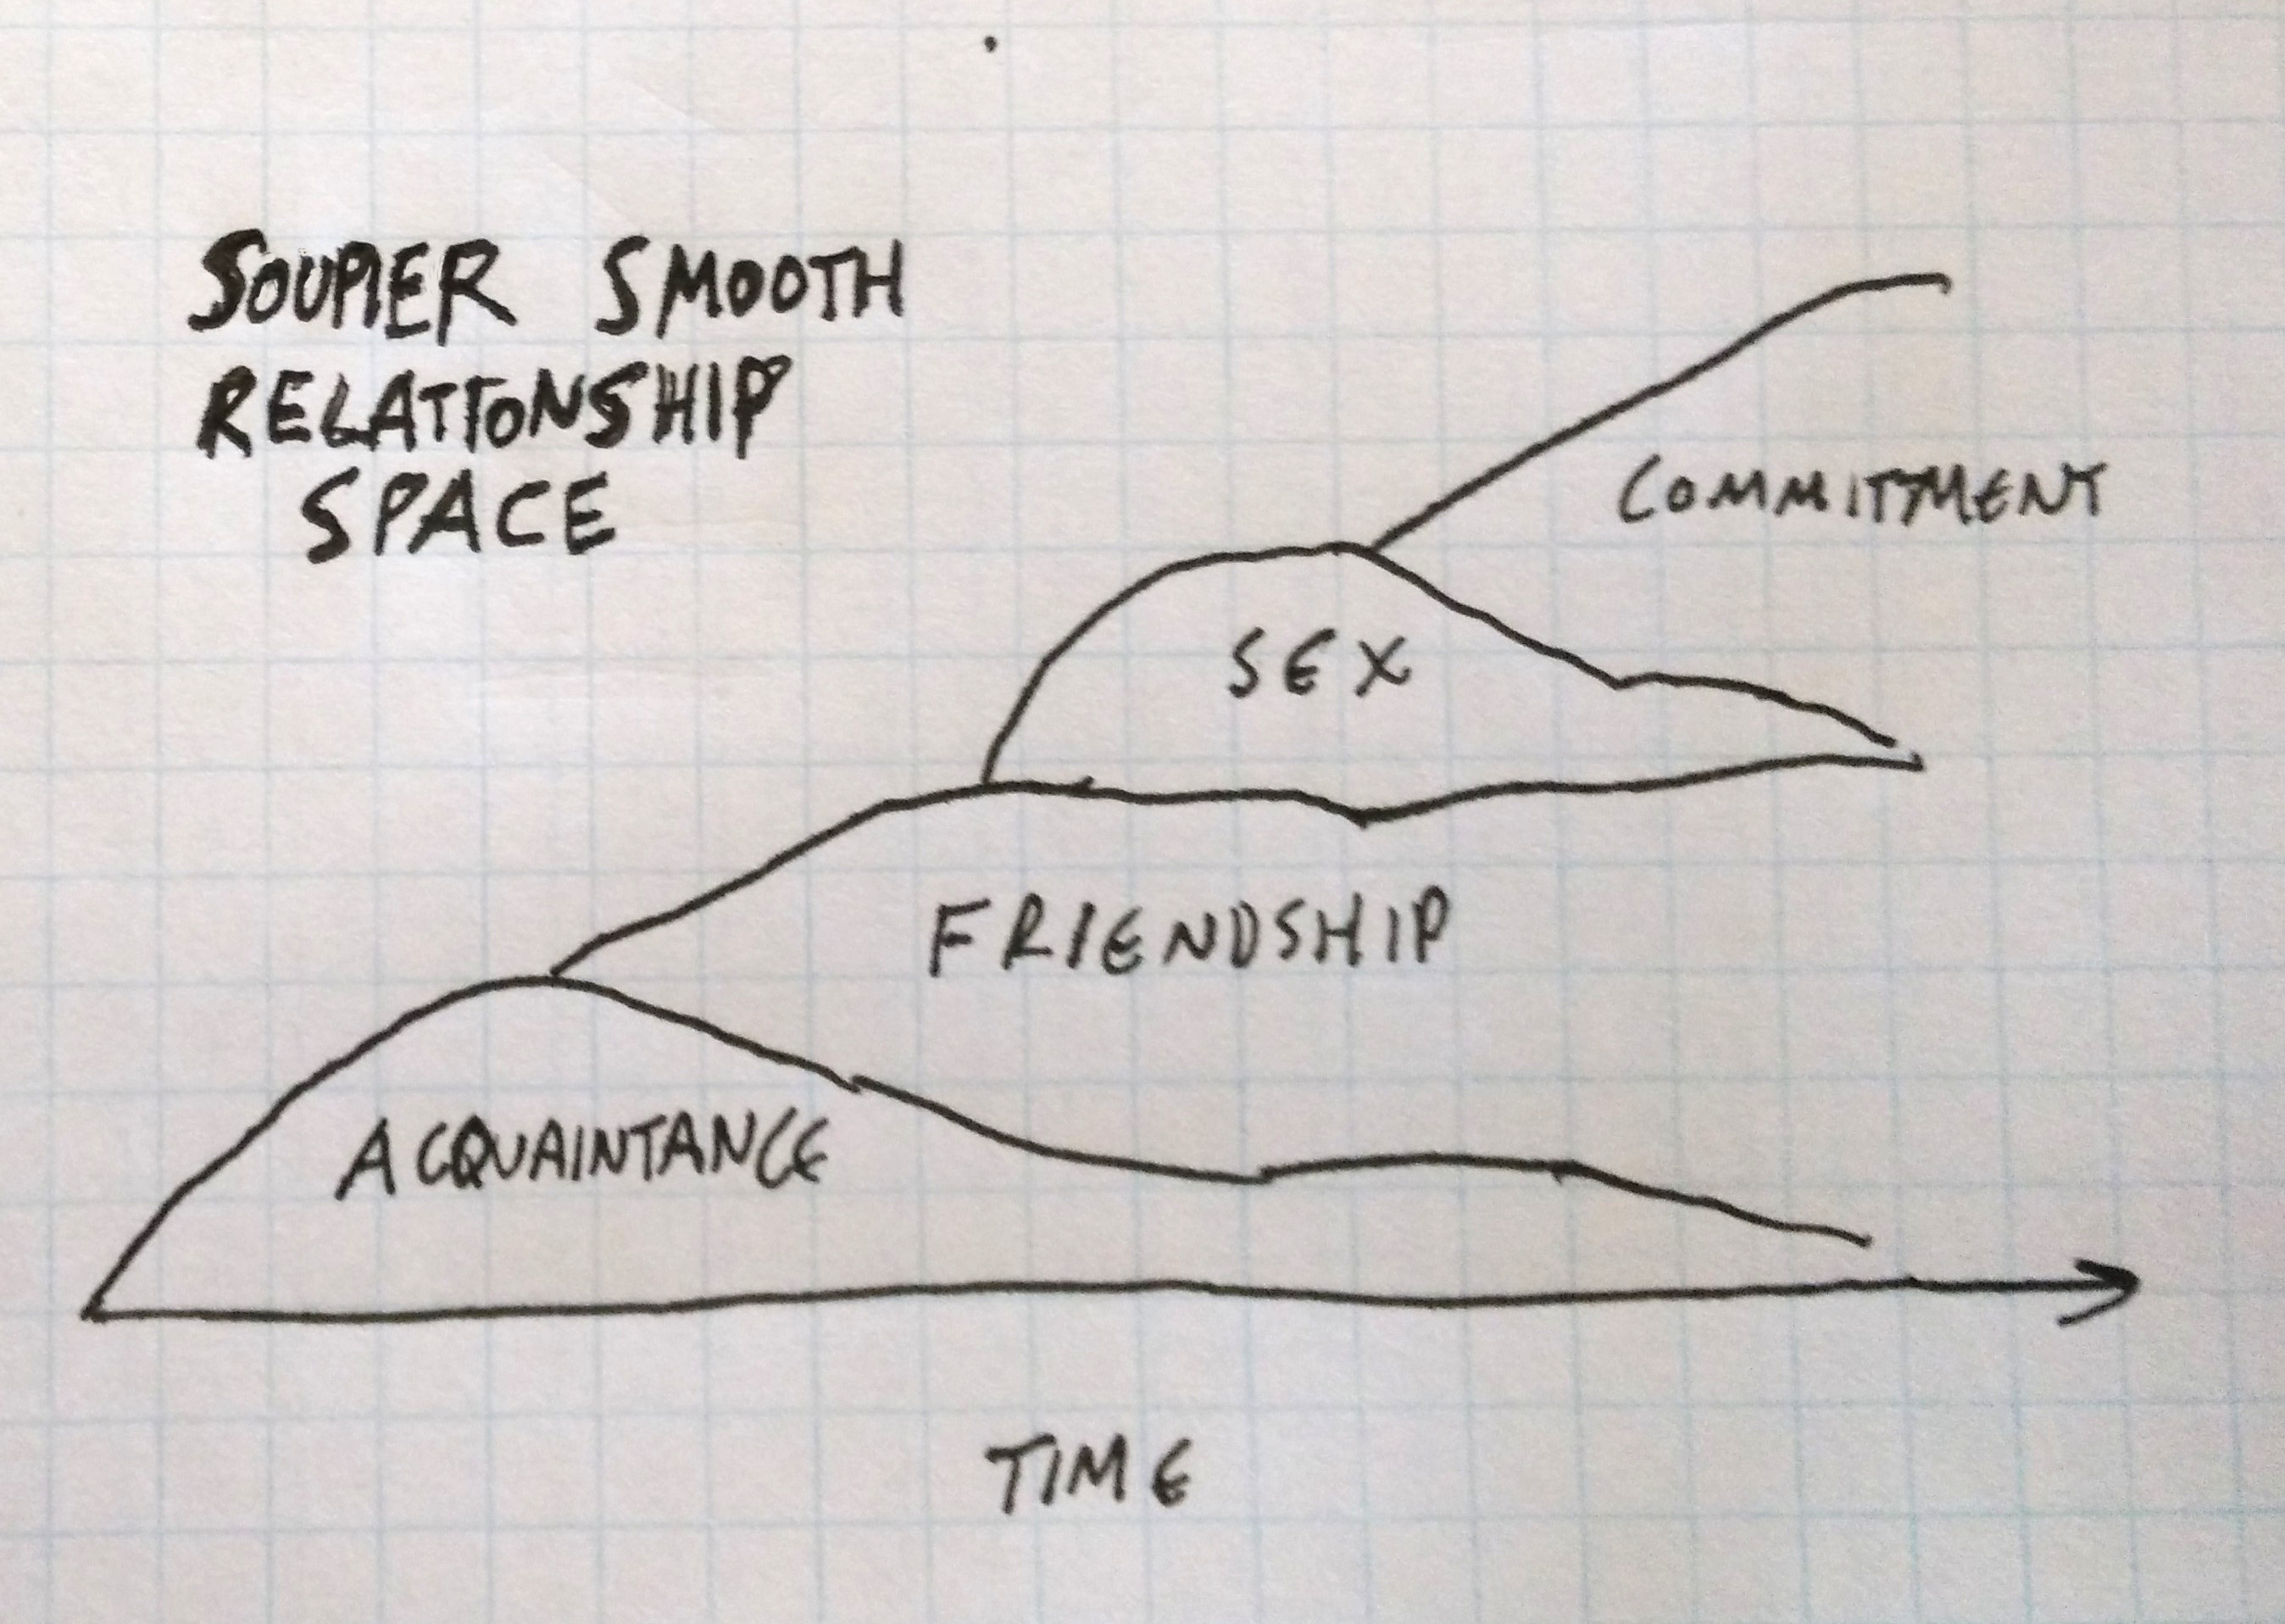 Smooth Relationship Space